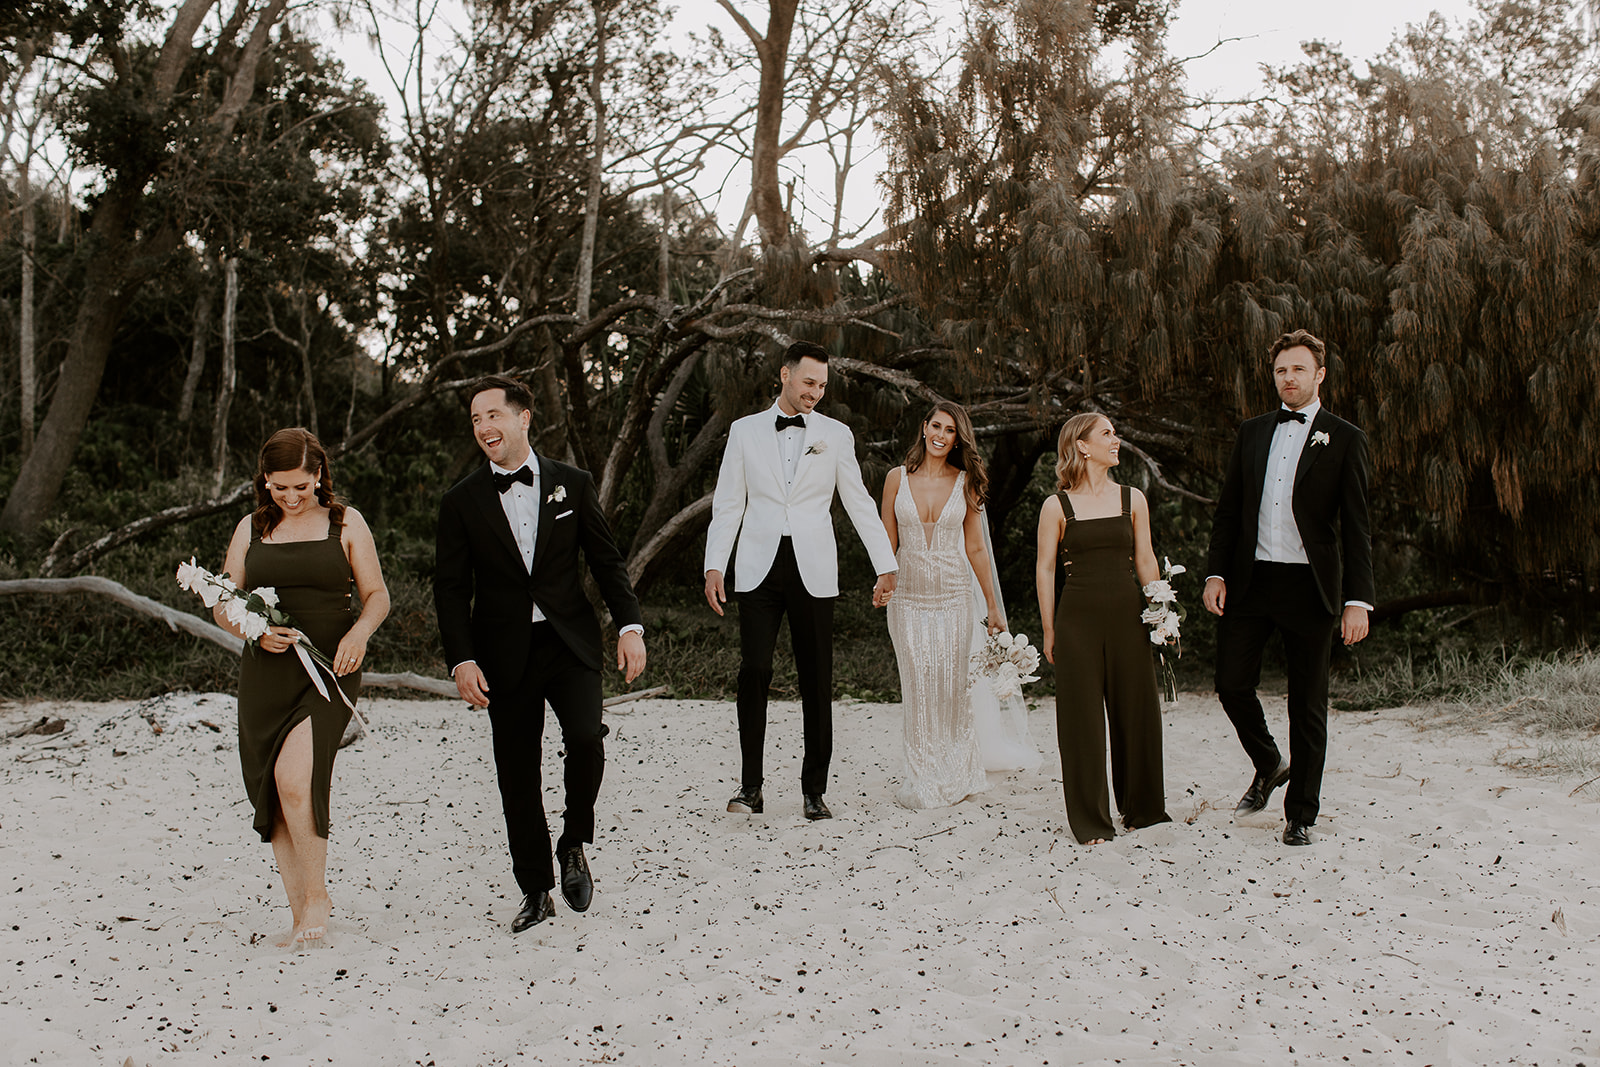 Bloodwood Botanica | Bridal party